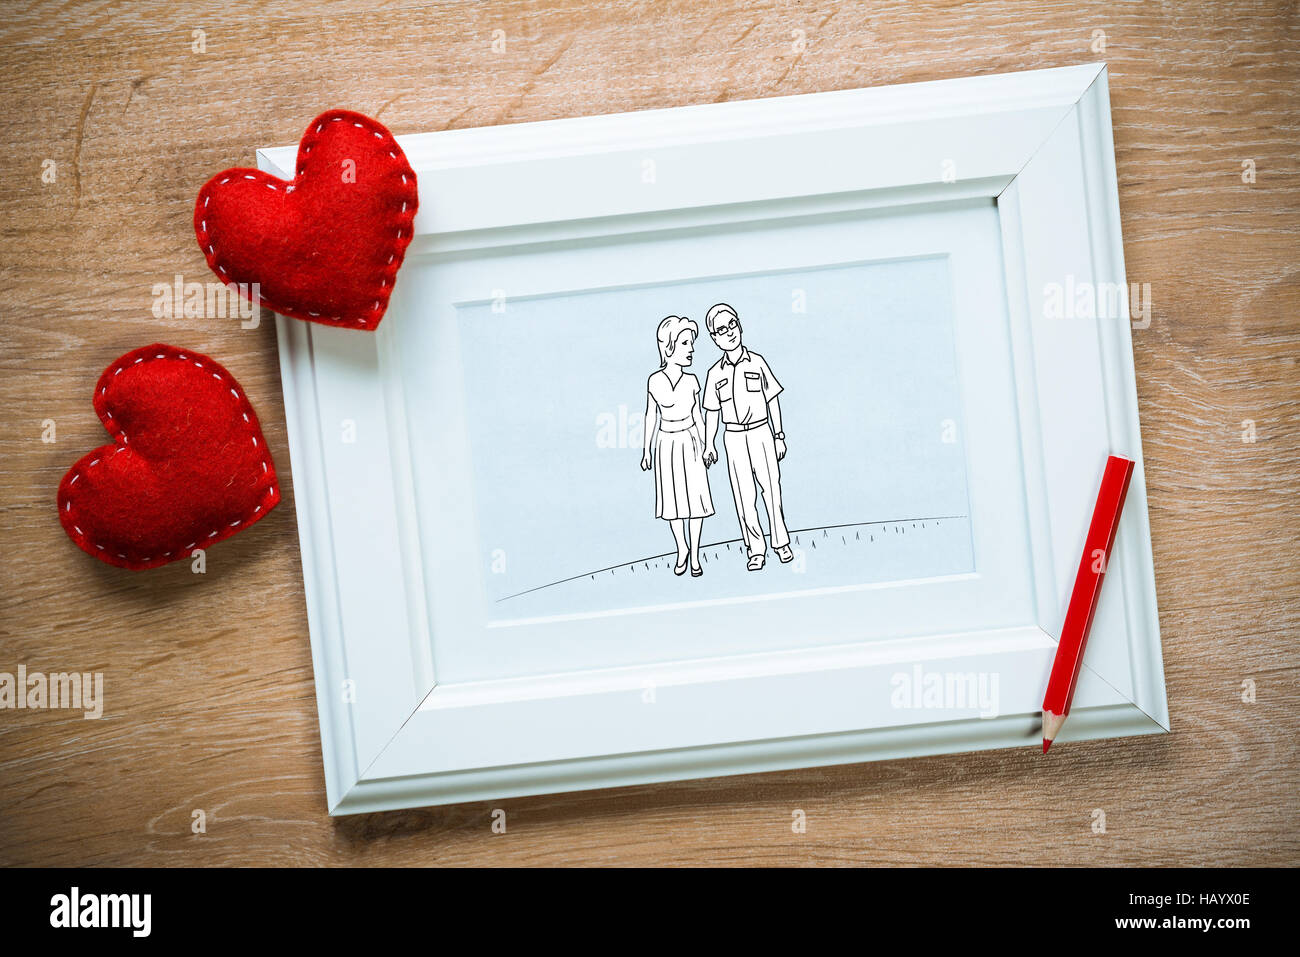 The sweetest moments - Stock Image